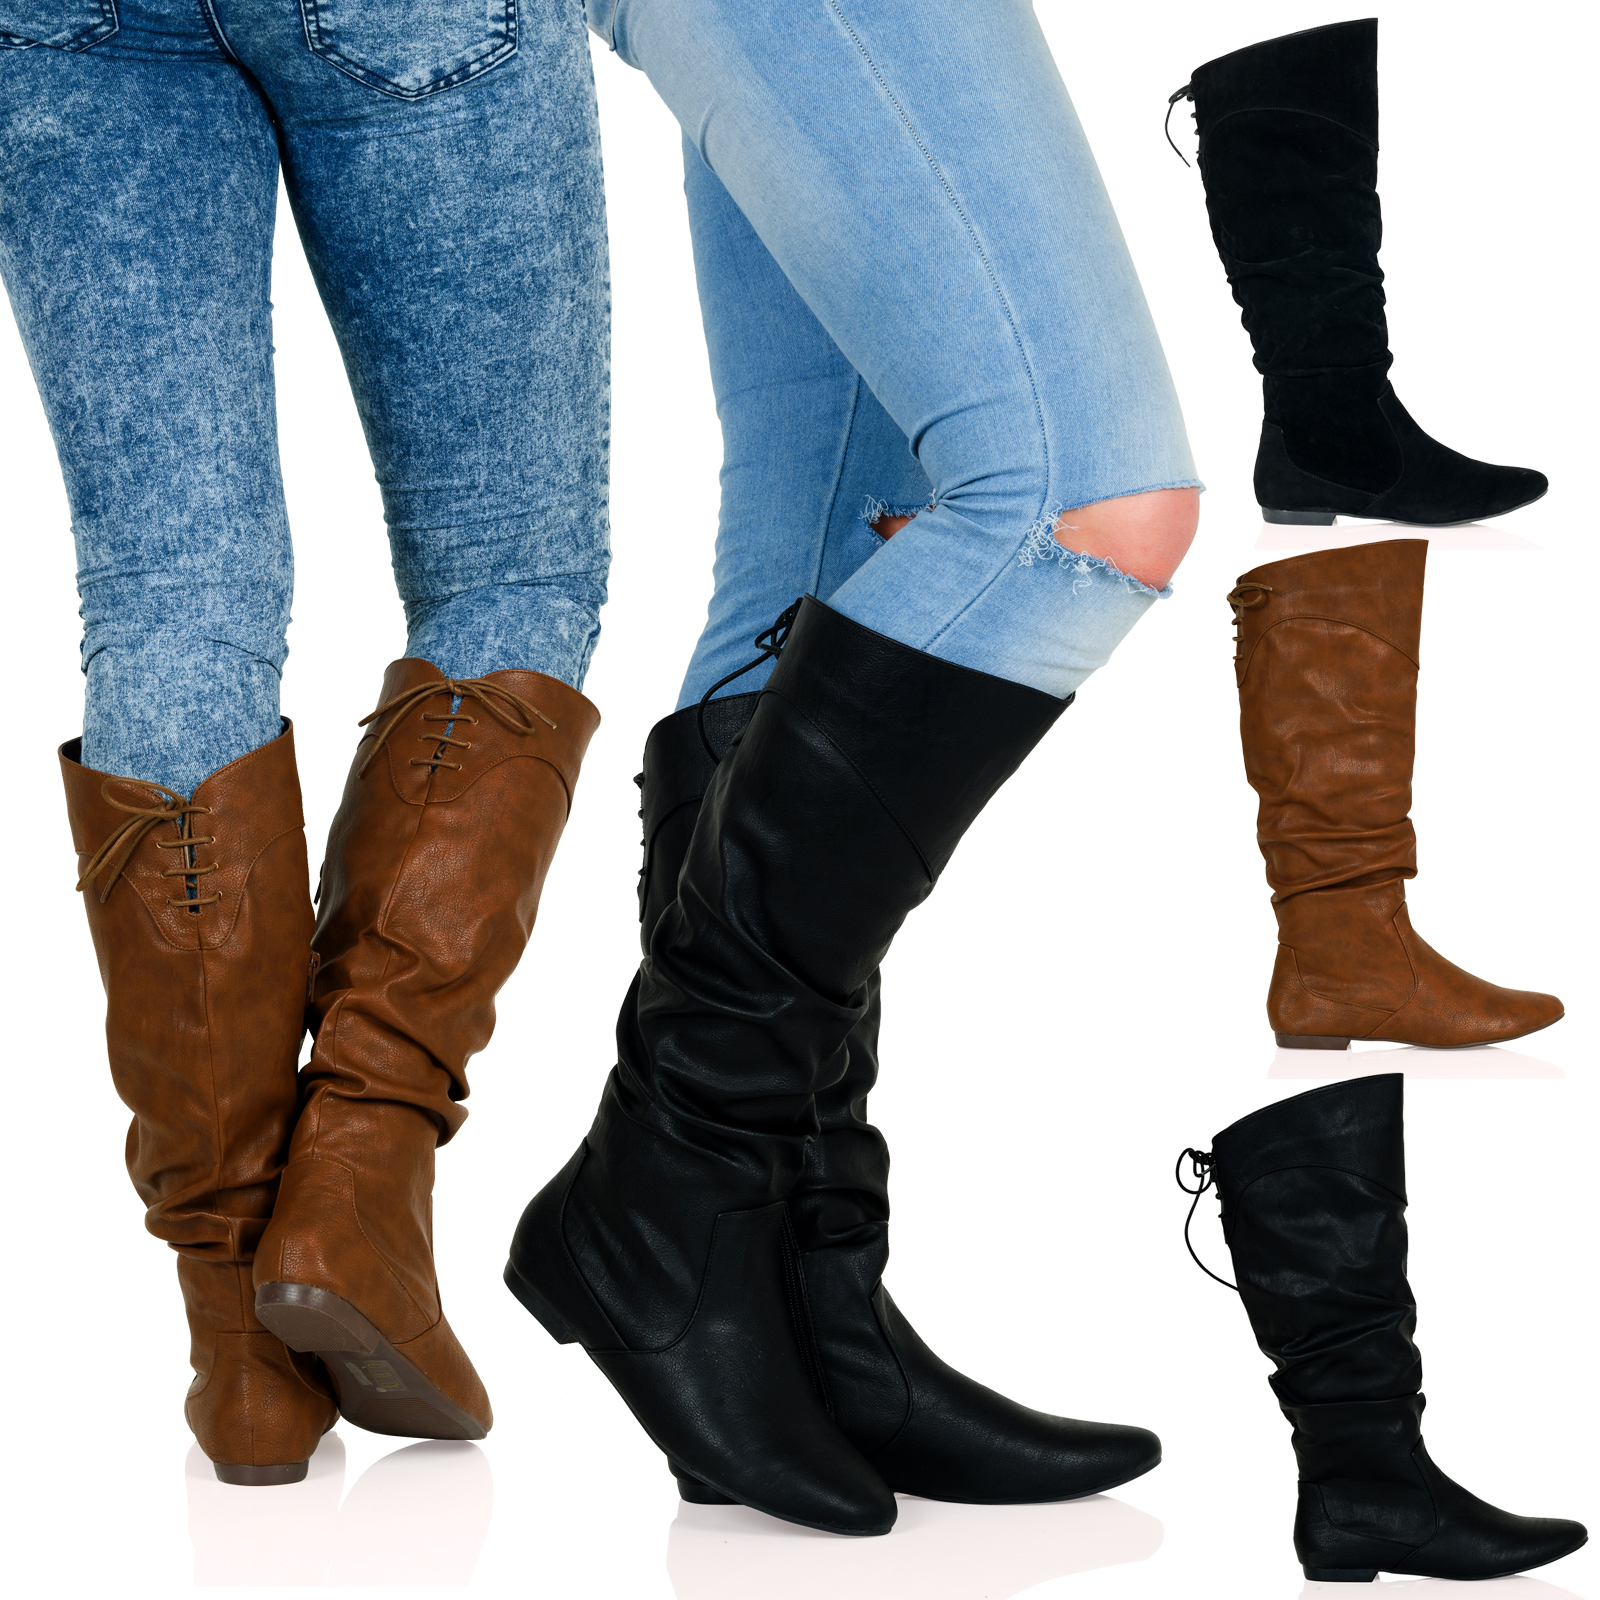 WOMENS BOOTS LADIES MID CALF CLASSIC FLAT LOW HEEL ZIP UP SLOUCH ...